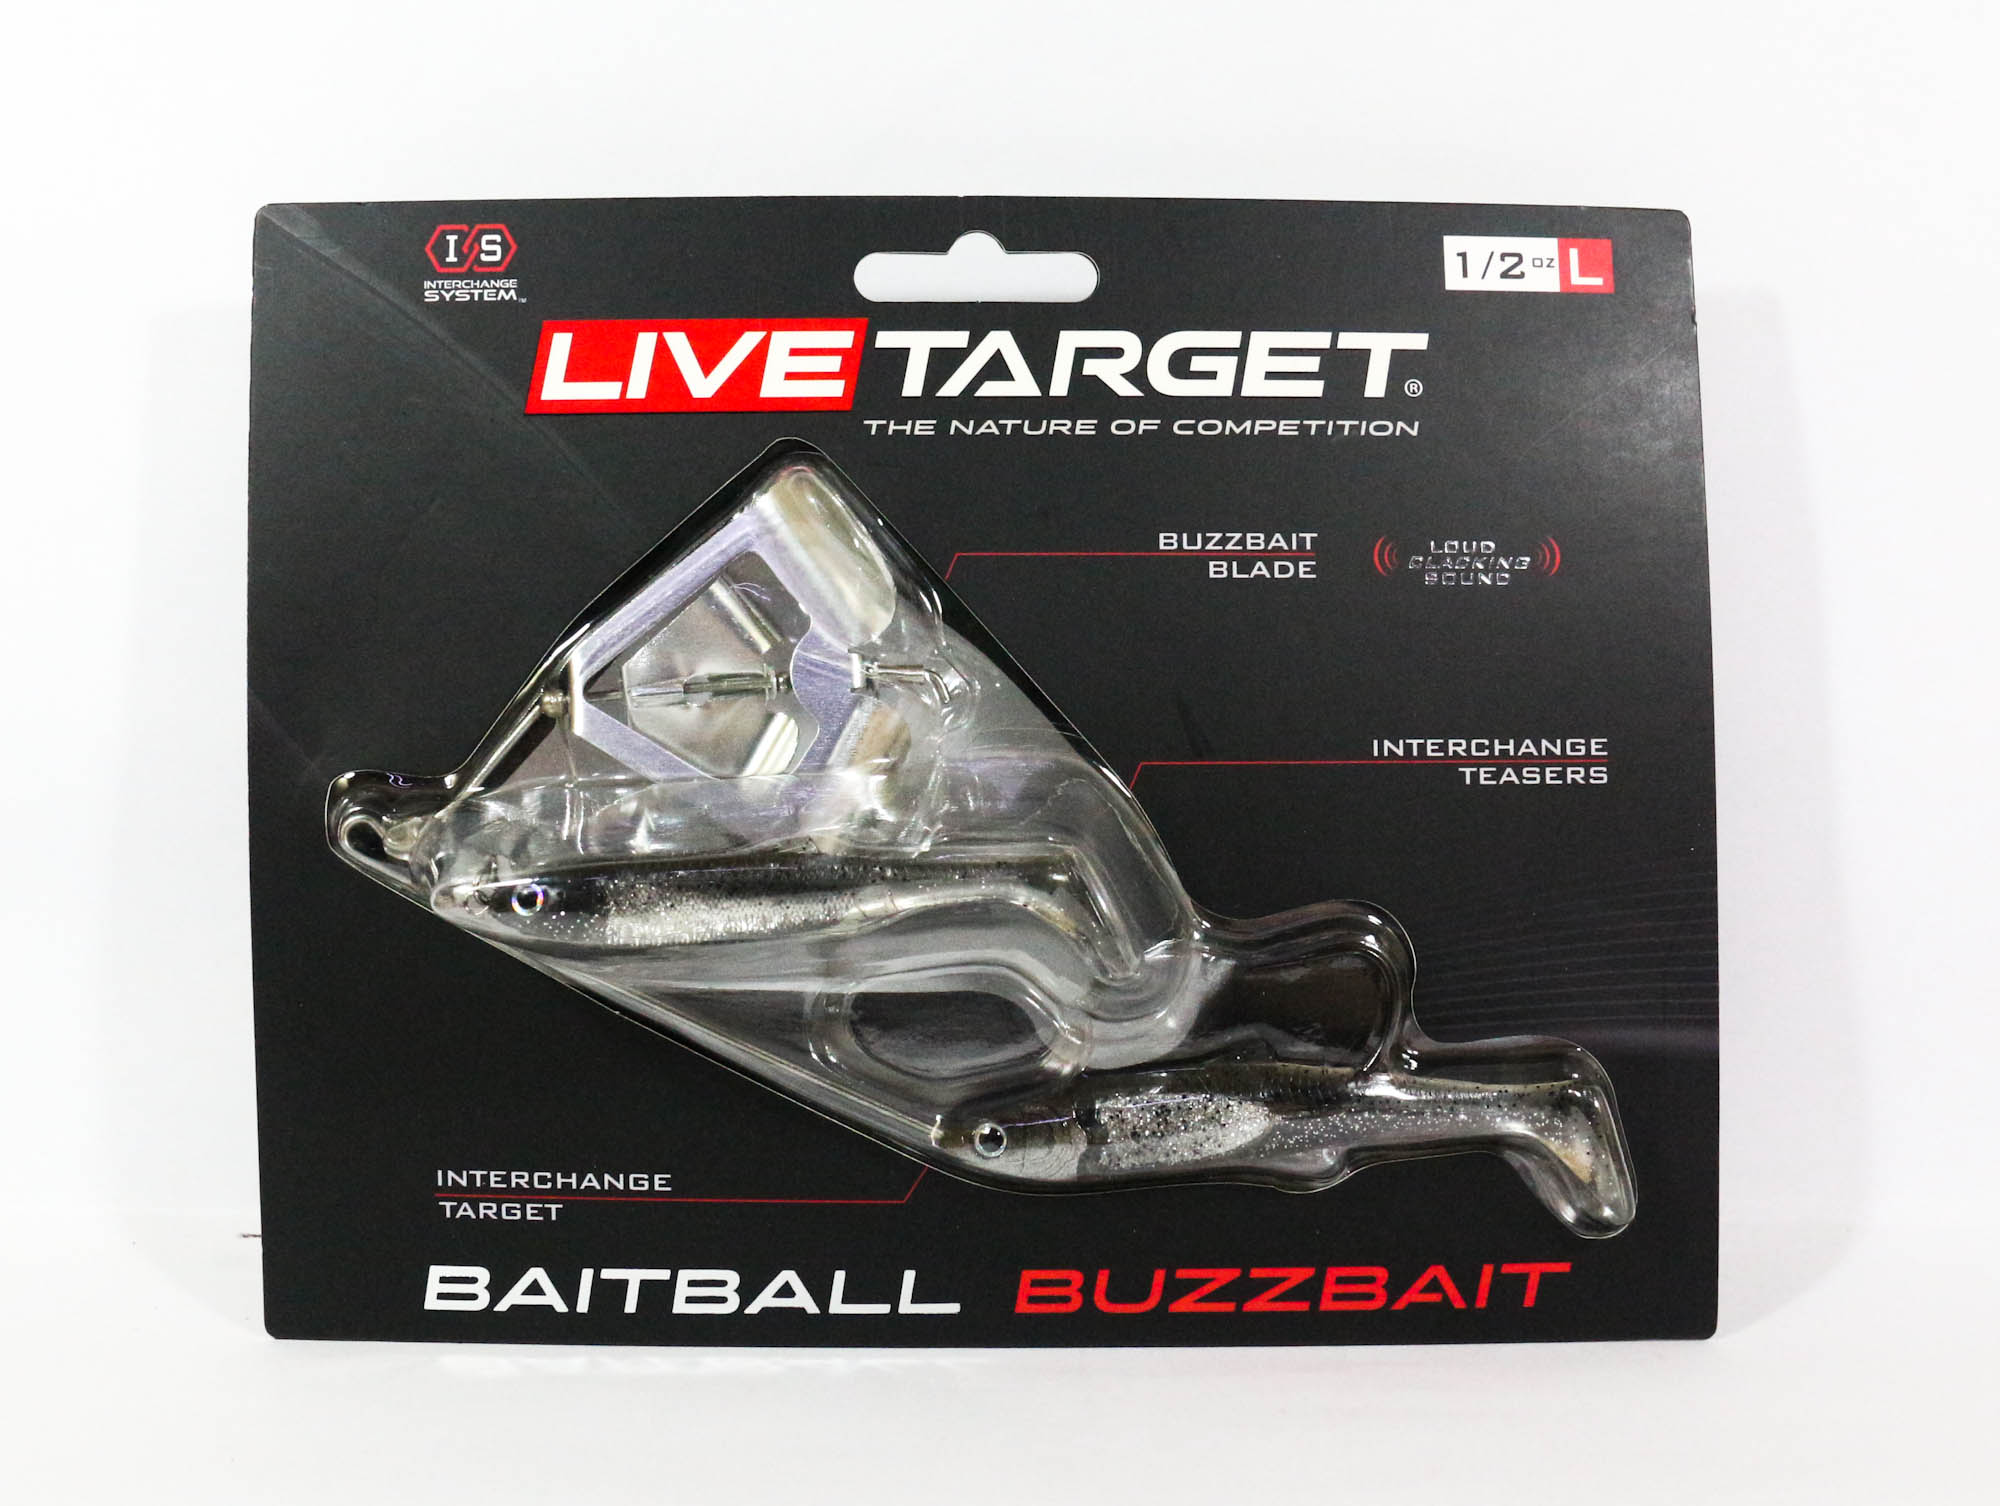 Live Target Bait Ball Buzz Bait Topwater Sinking Lure 850 (3286)